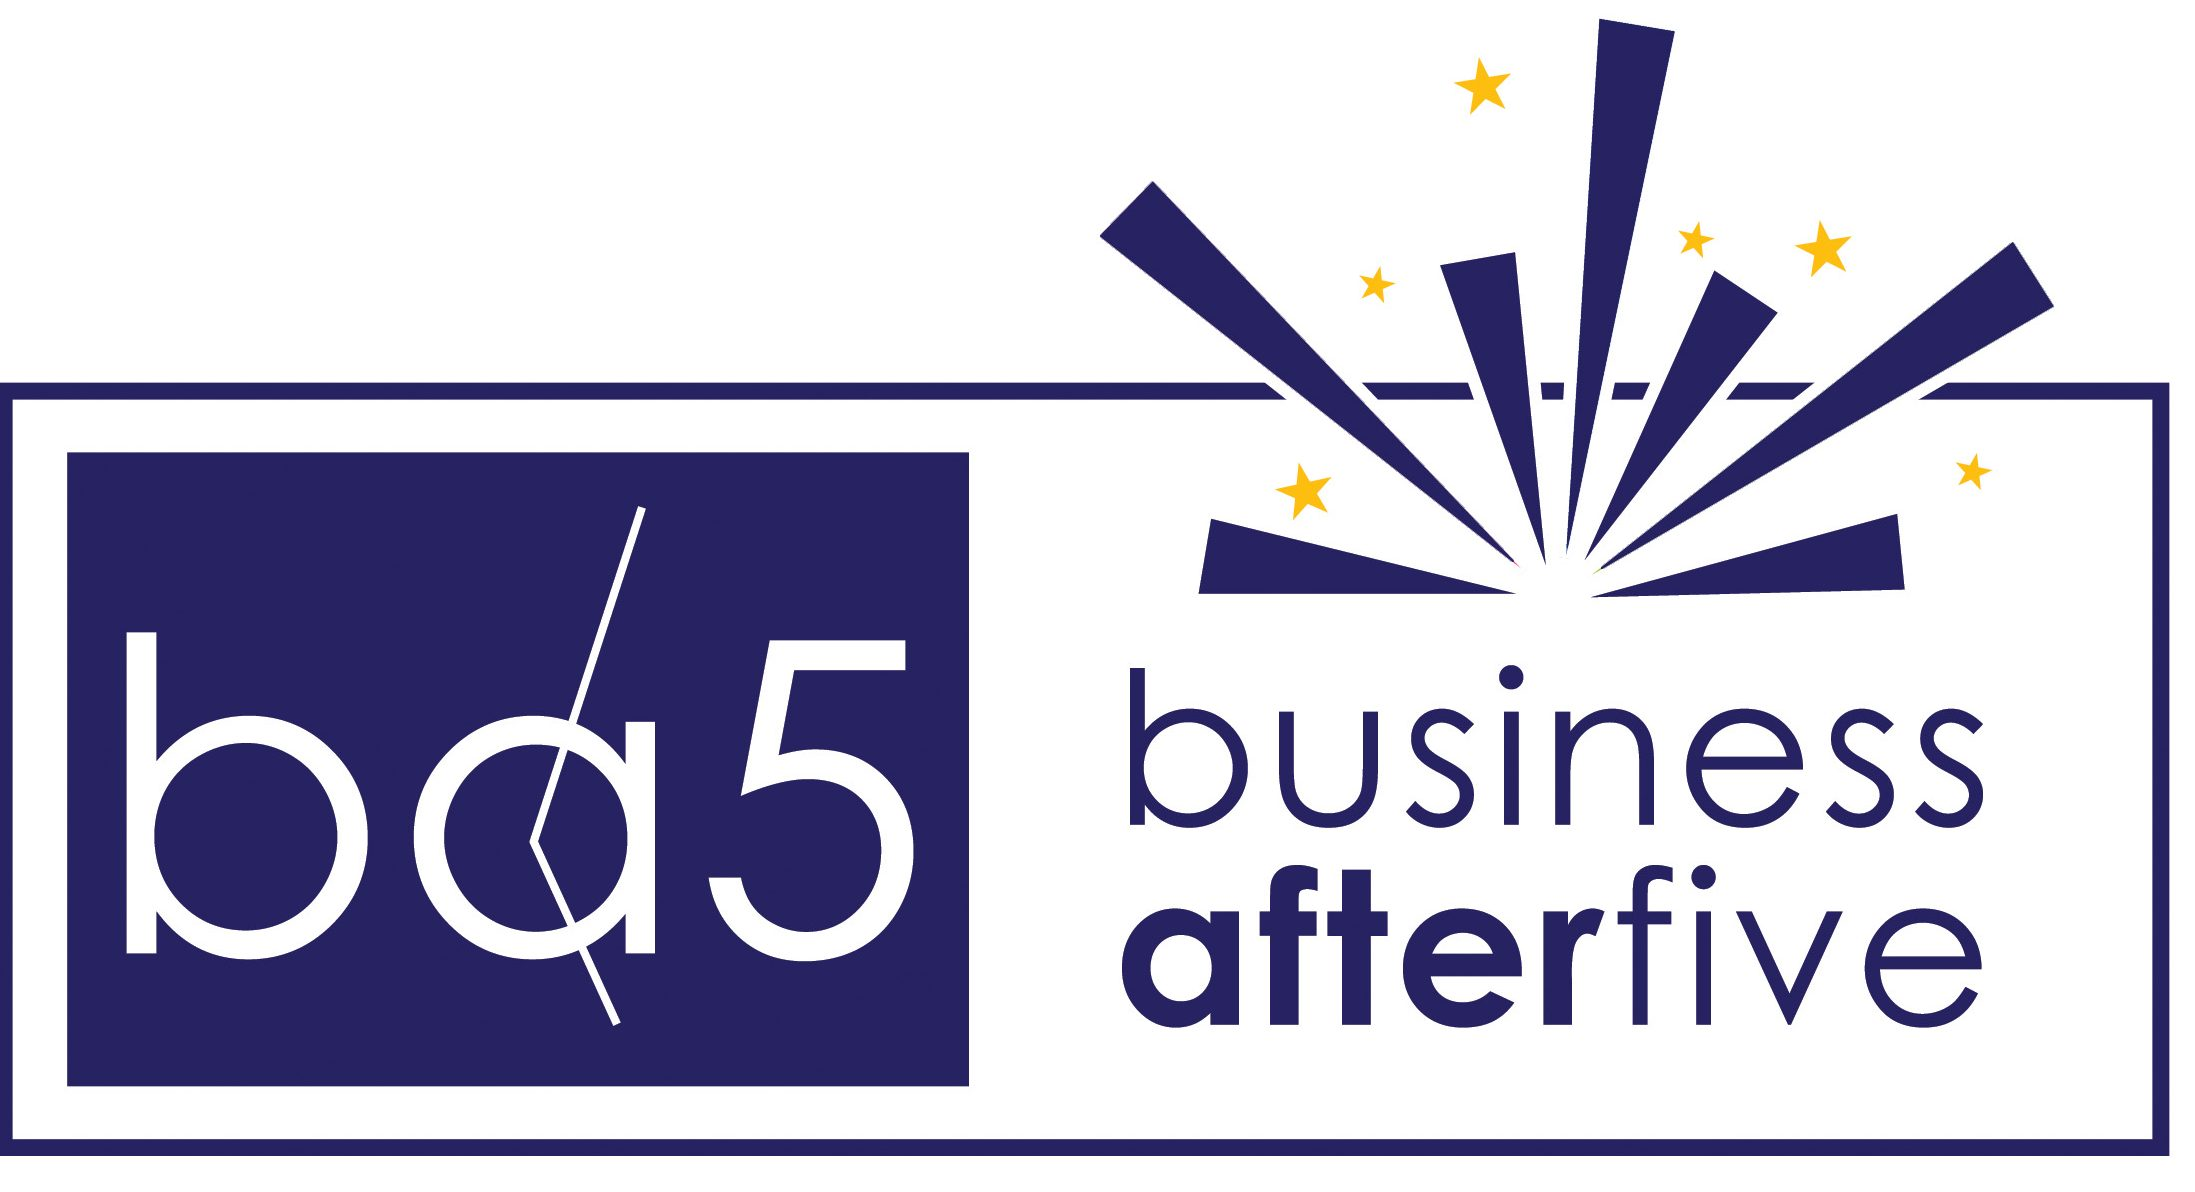 April Business After 5